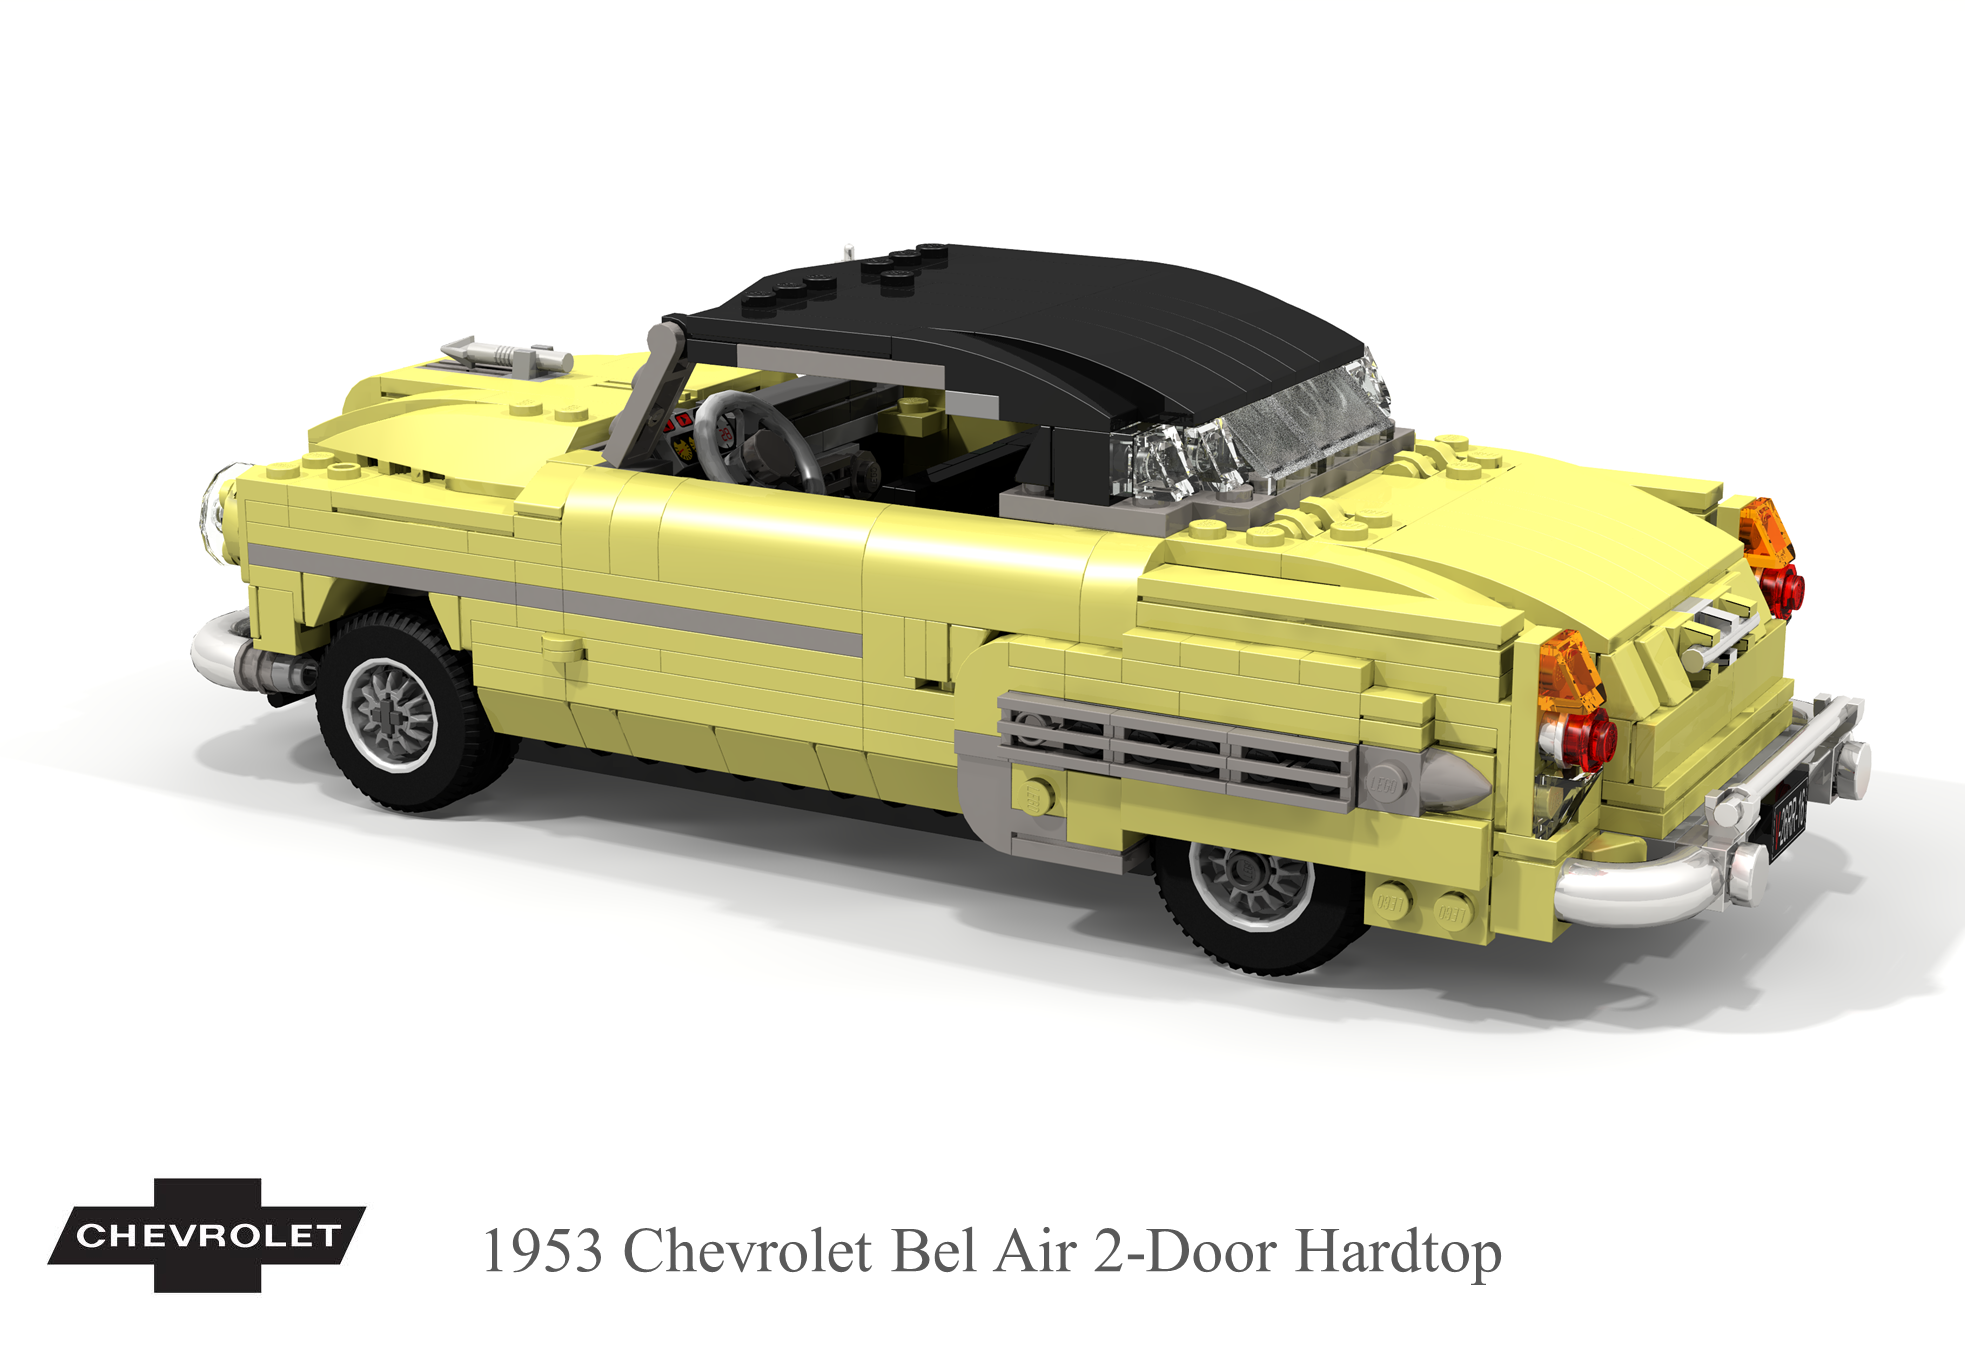 chevrolet_1953_bel_air_hardtop_coupe_02.png